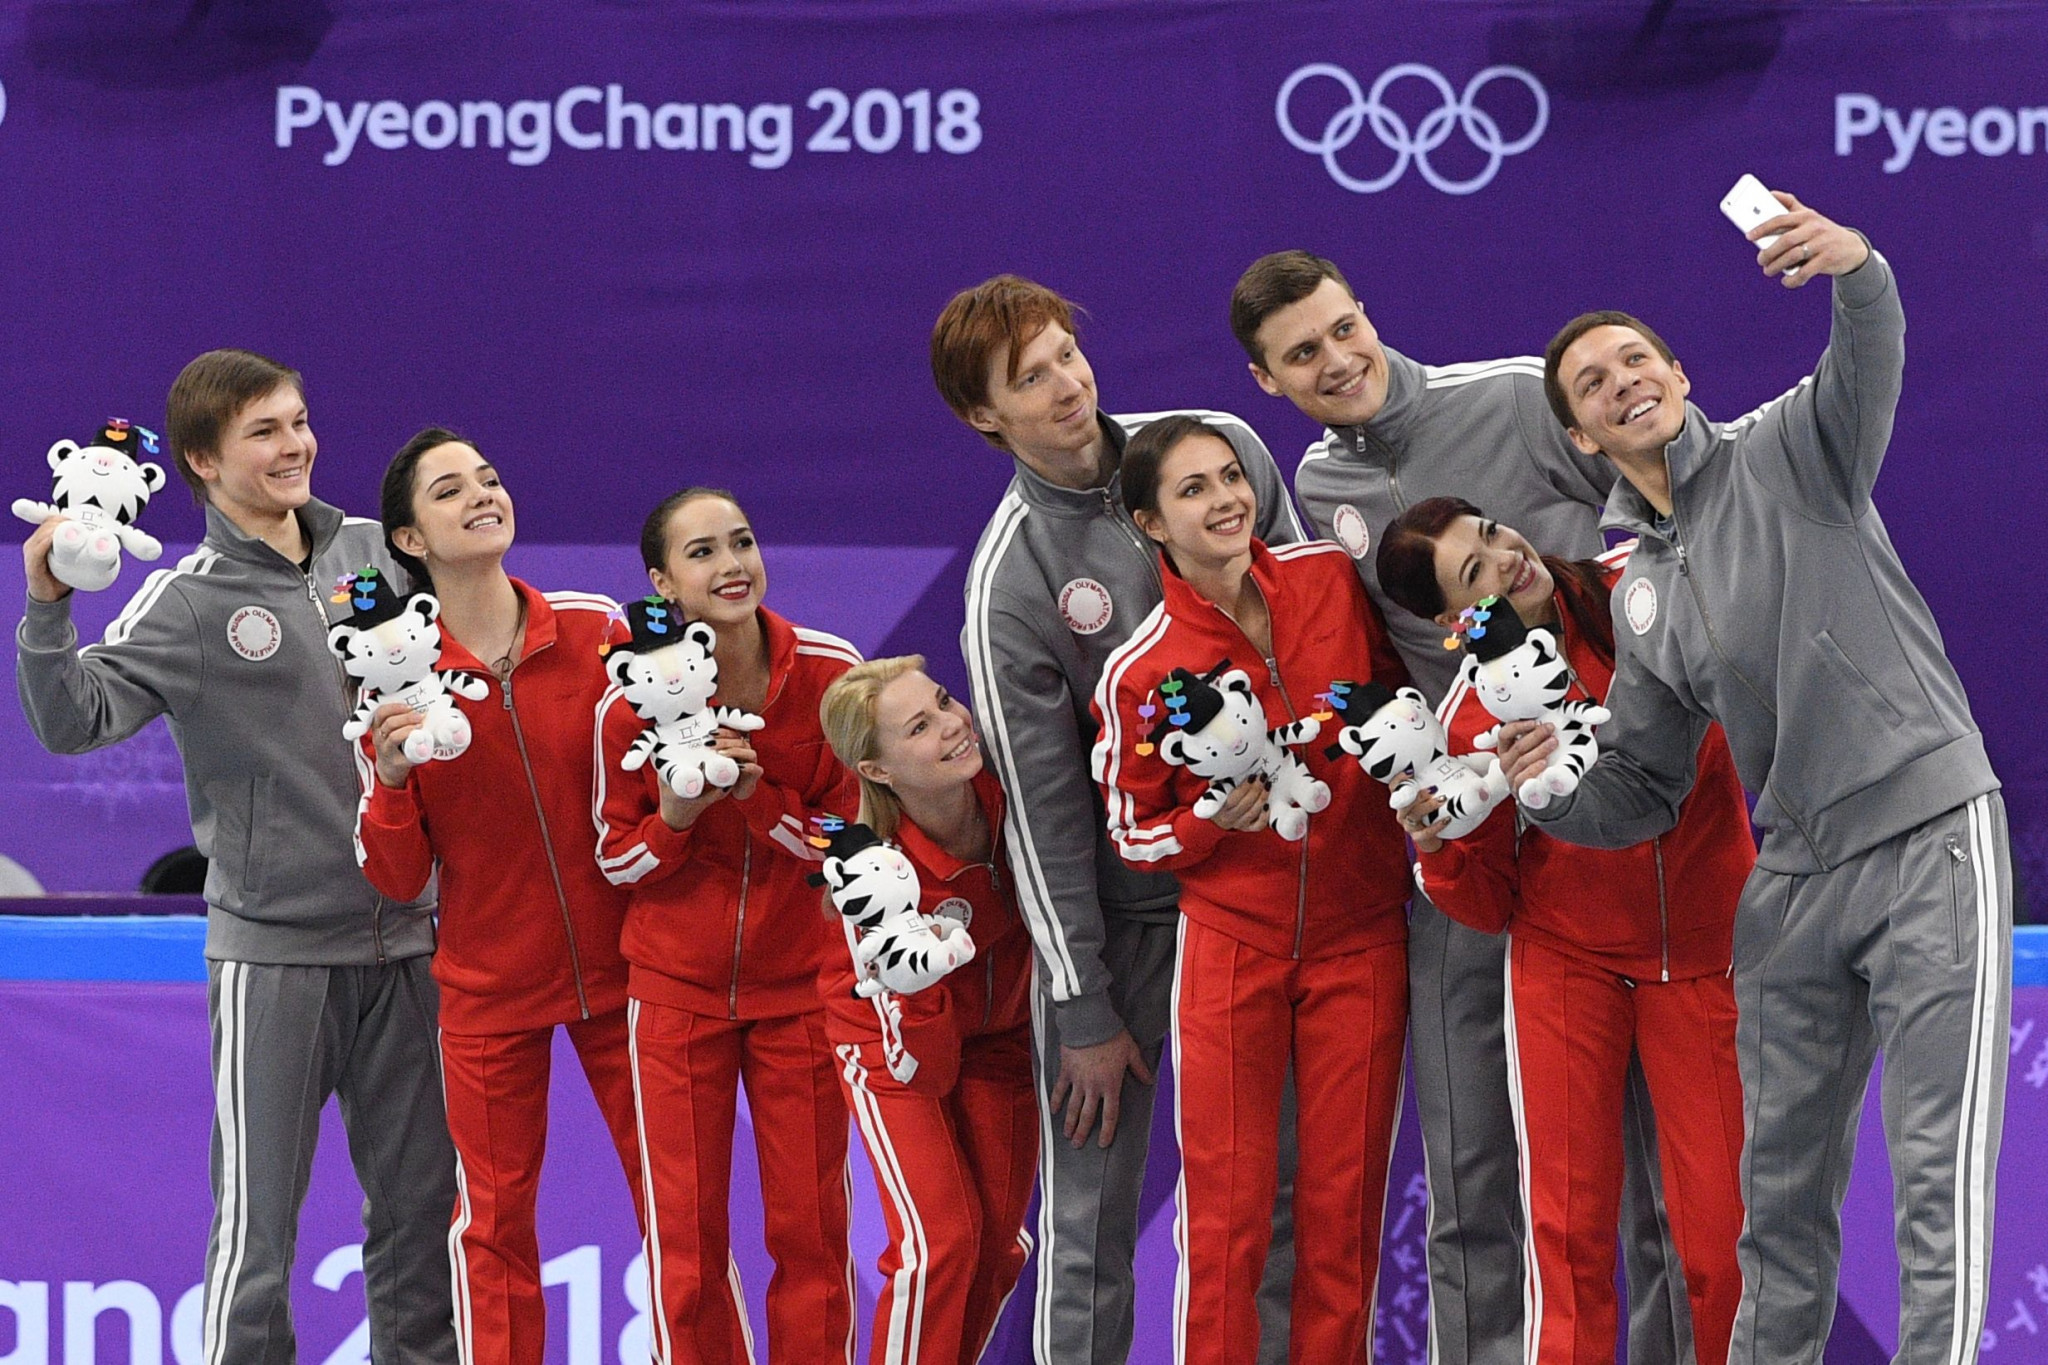 Russian companies show support on social media for athletes at Pyeongchang 2018